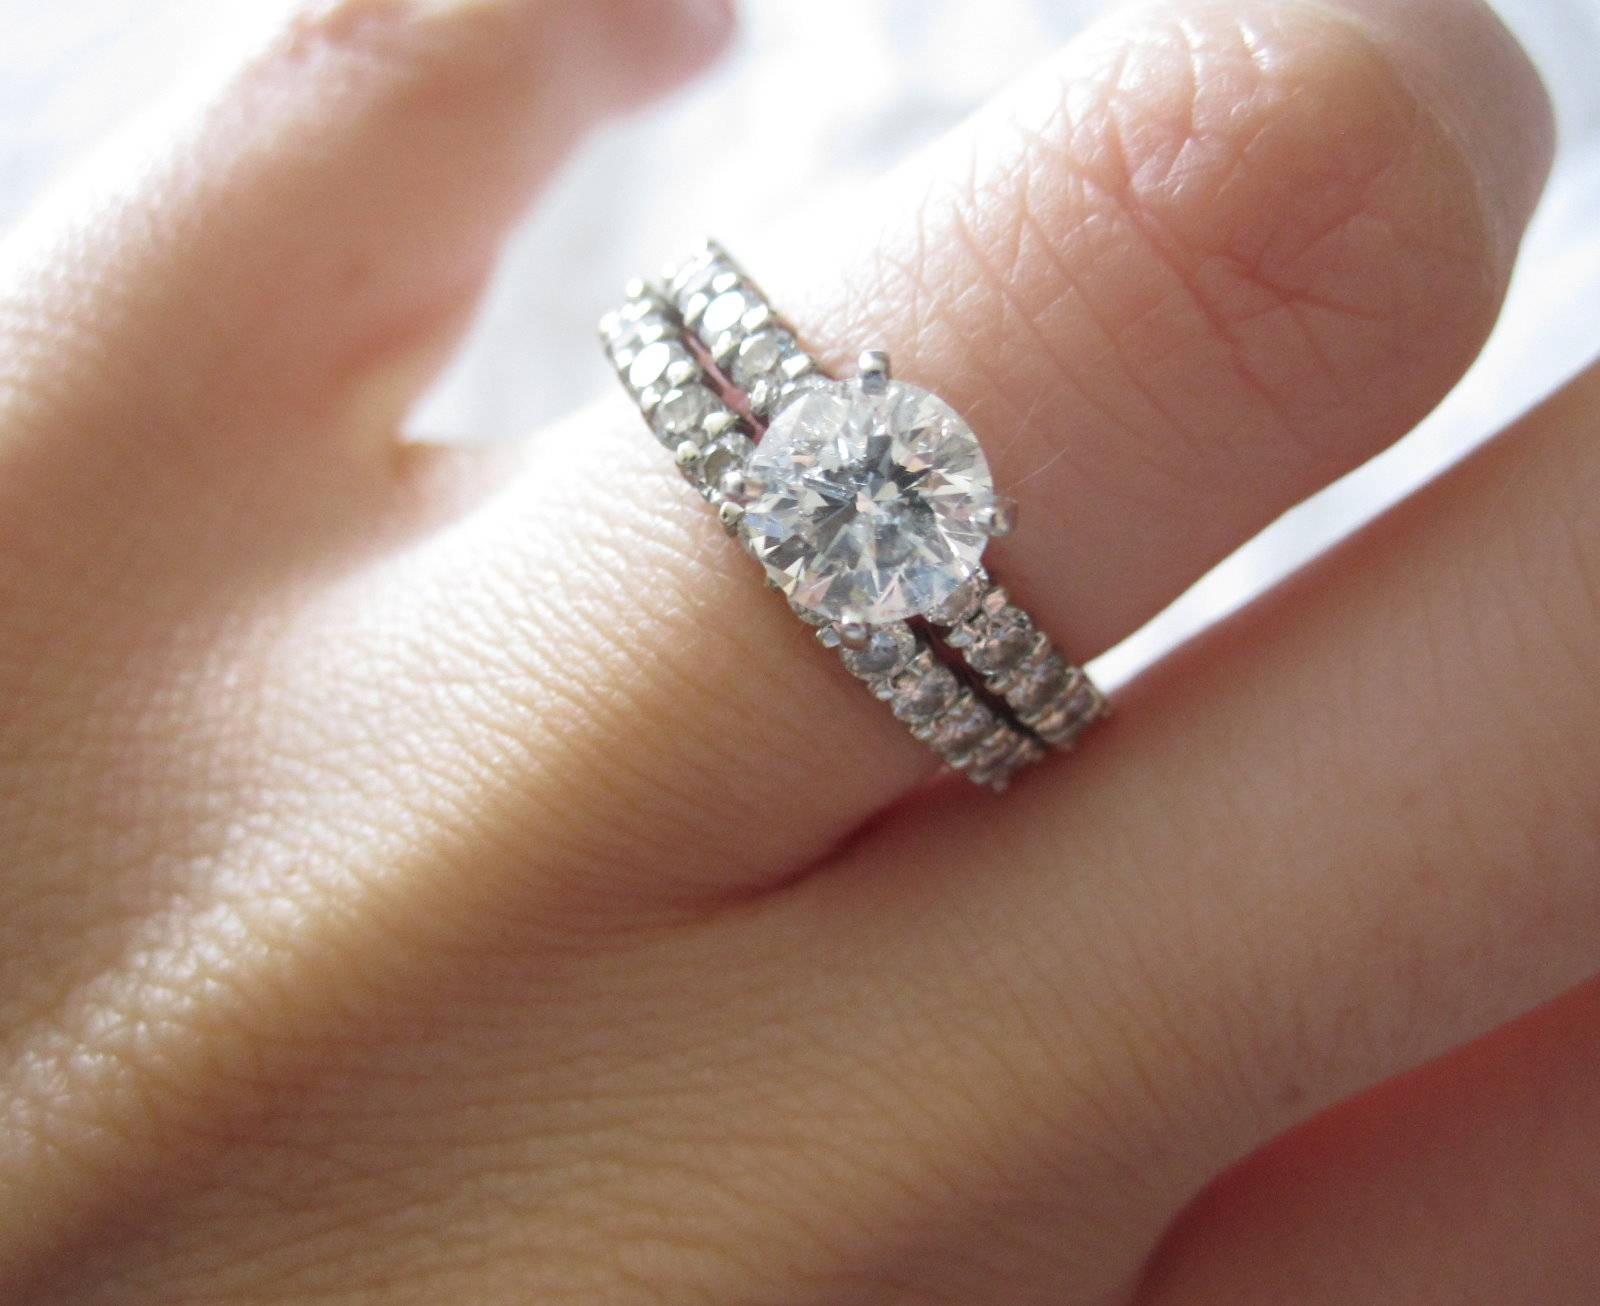 Wedding Band Engagement Ring Pertaining To Wedding Bands And Engagement Rings (View 11 of 15)